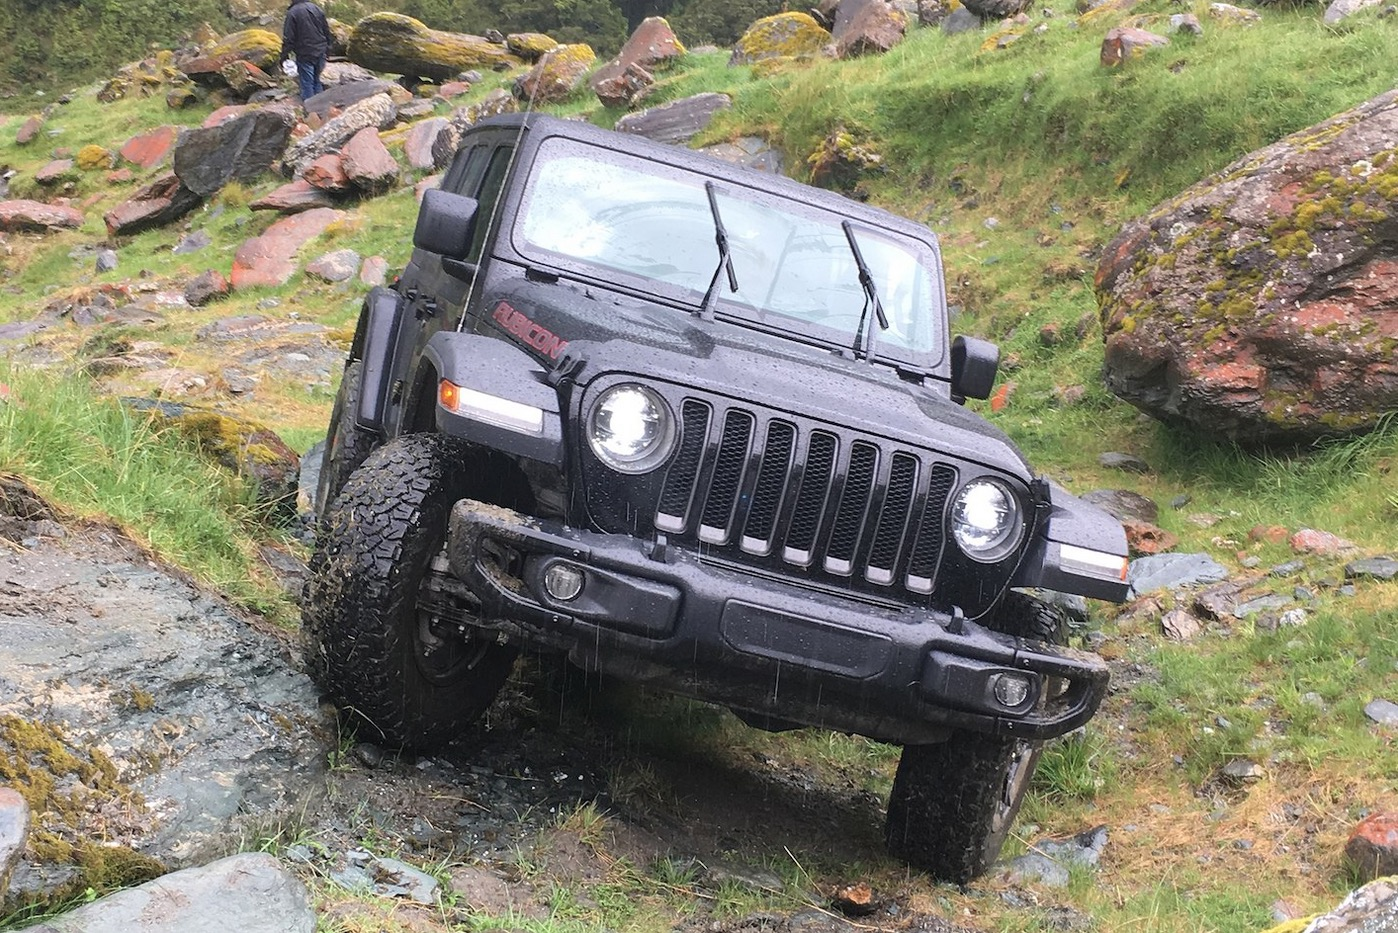 First in-action photos + videos of 2018 Wrangler JL and ...